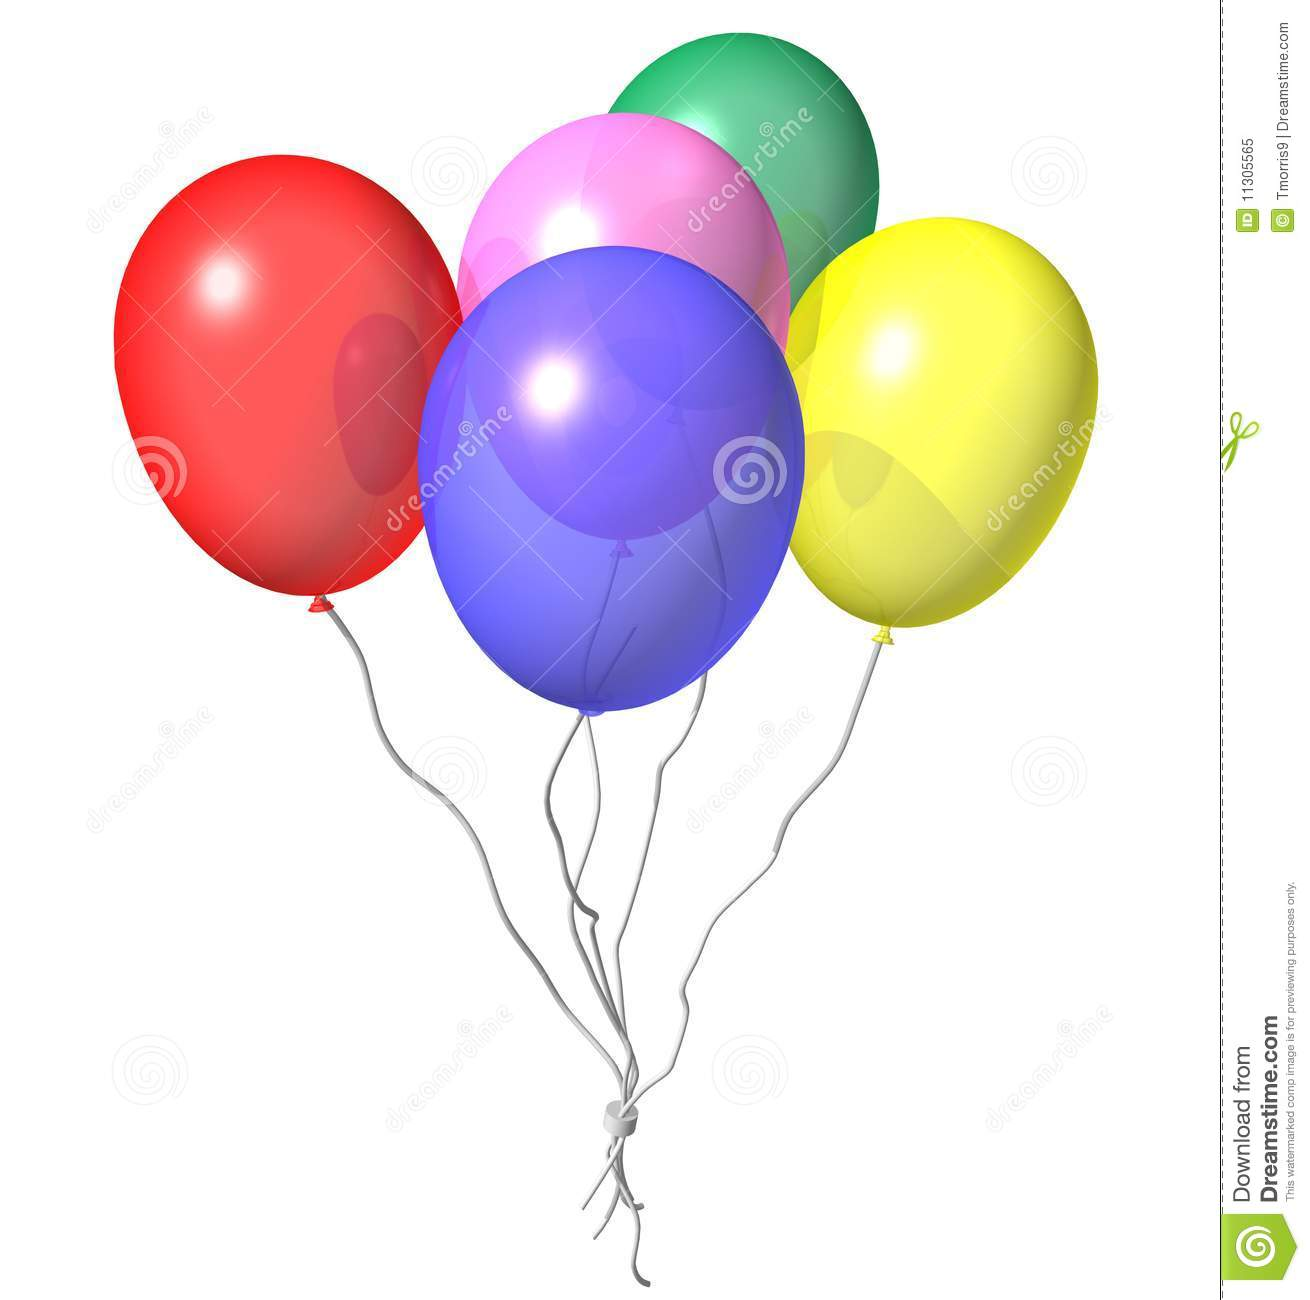 http://thumbs.dreamstime.com/z/party-balloons-11305565.jpg